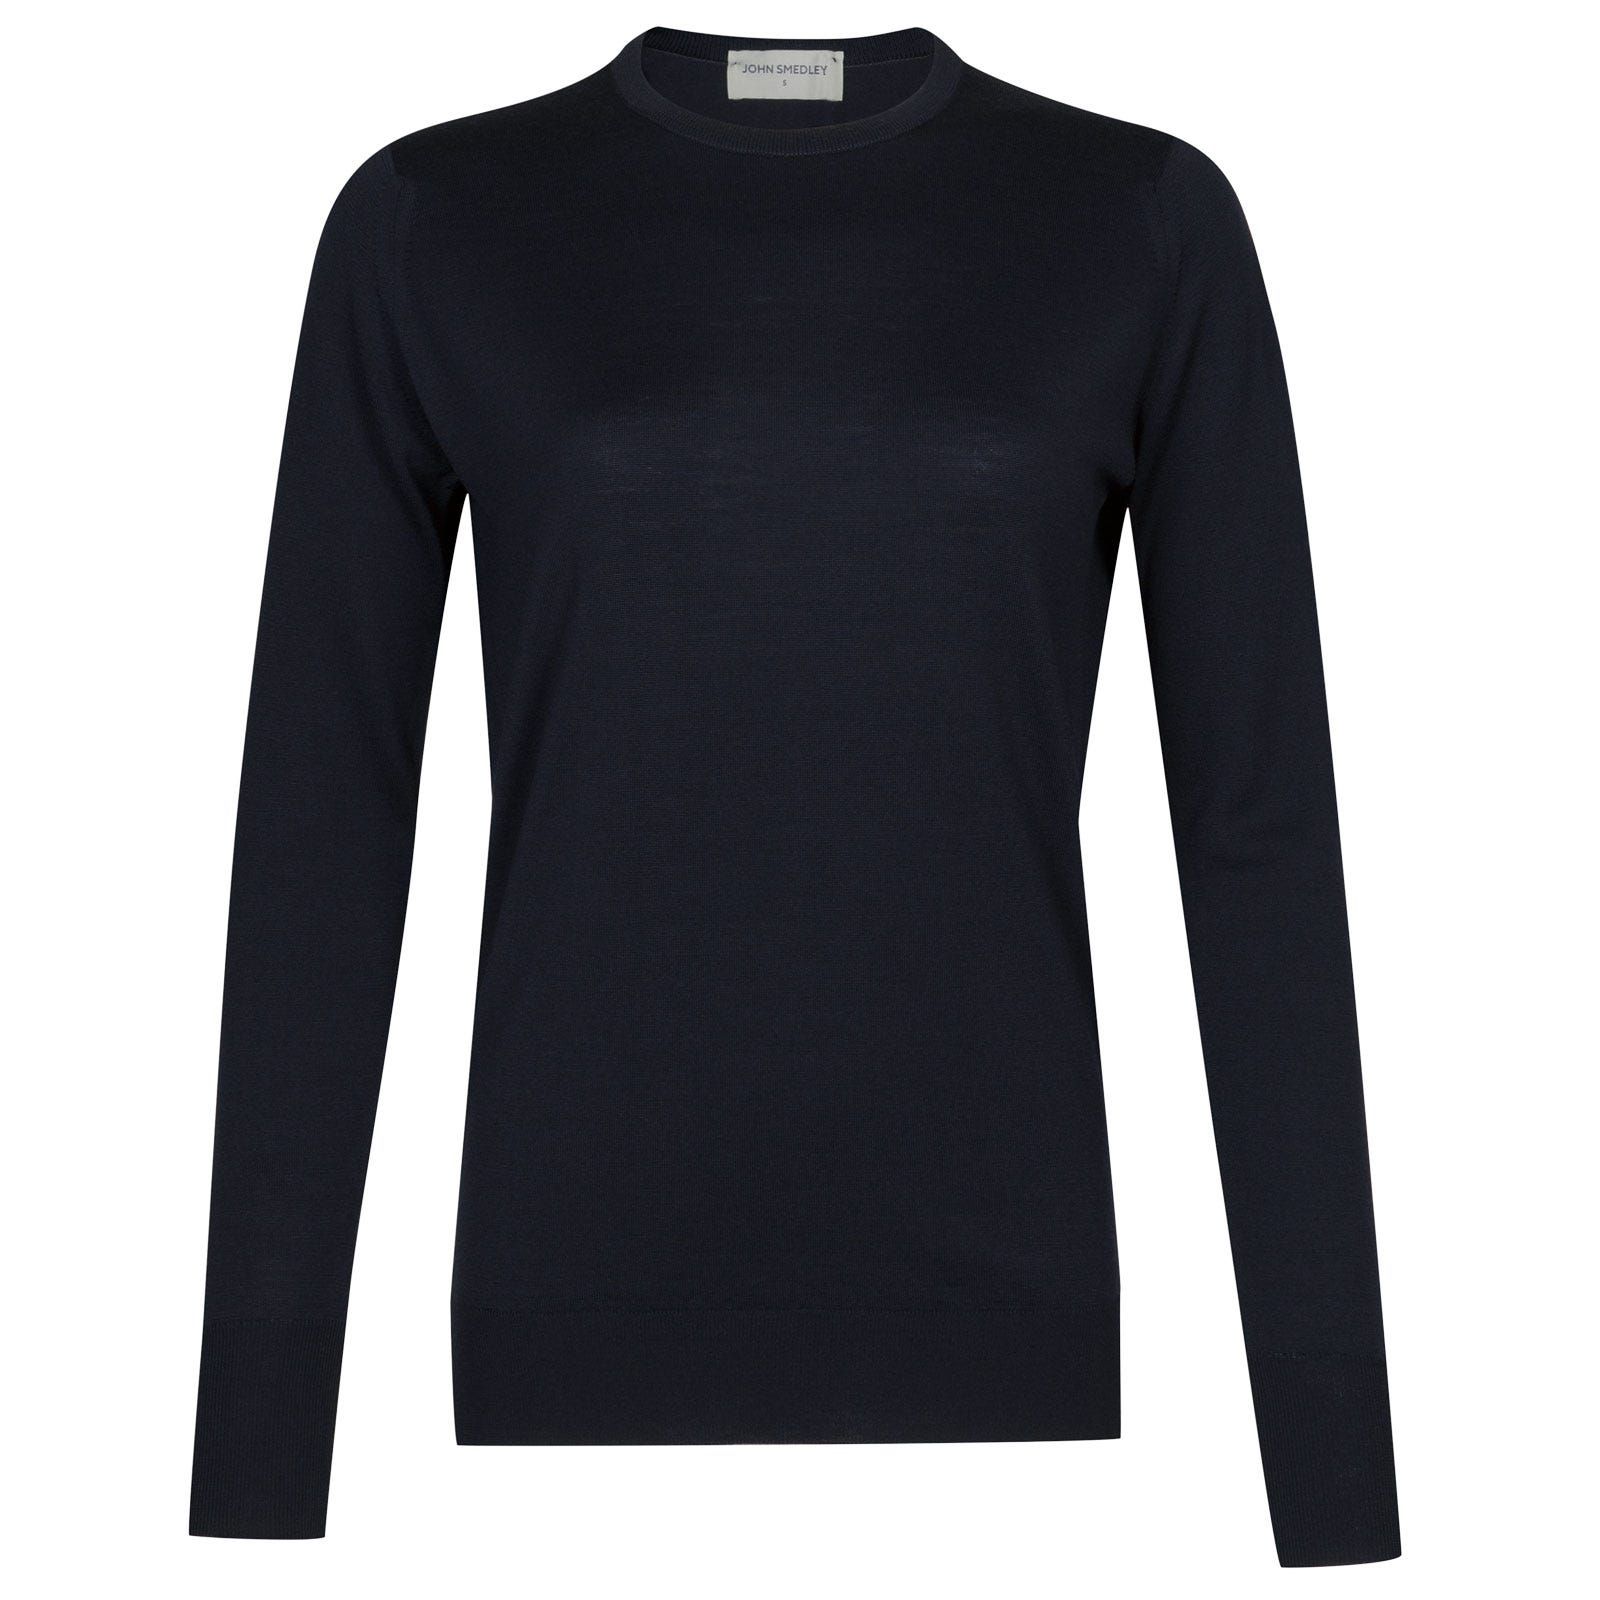 John Smedley Mitzi Merino Wool Sweater in Midnight-XL